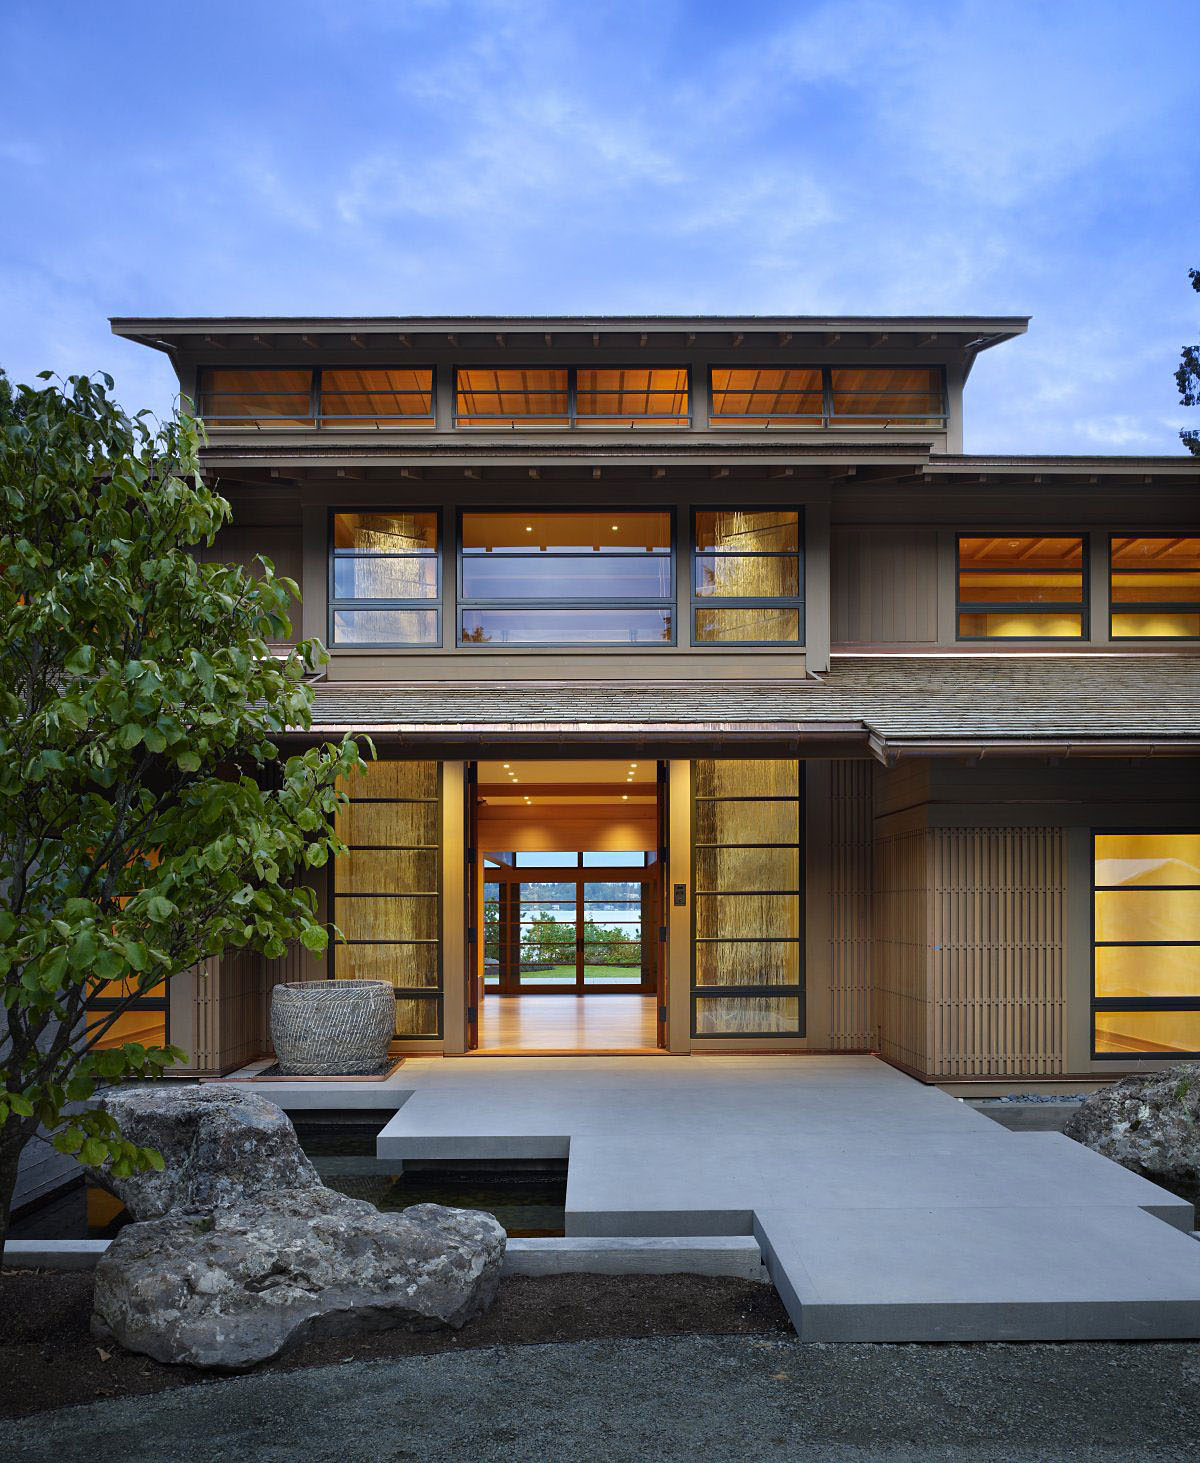 Modern Contemporary Home Interior Design: Contemporary House In Seattle With Japanese Influence